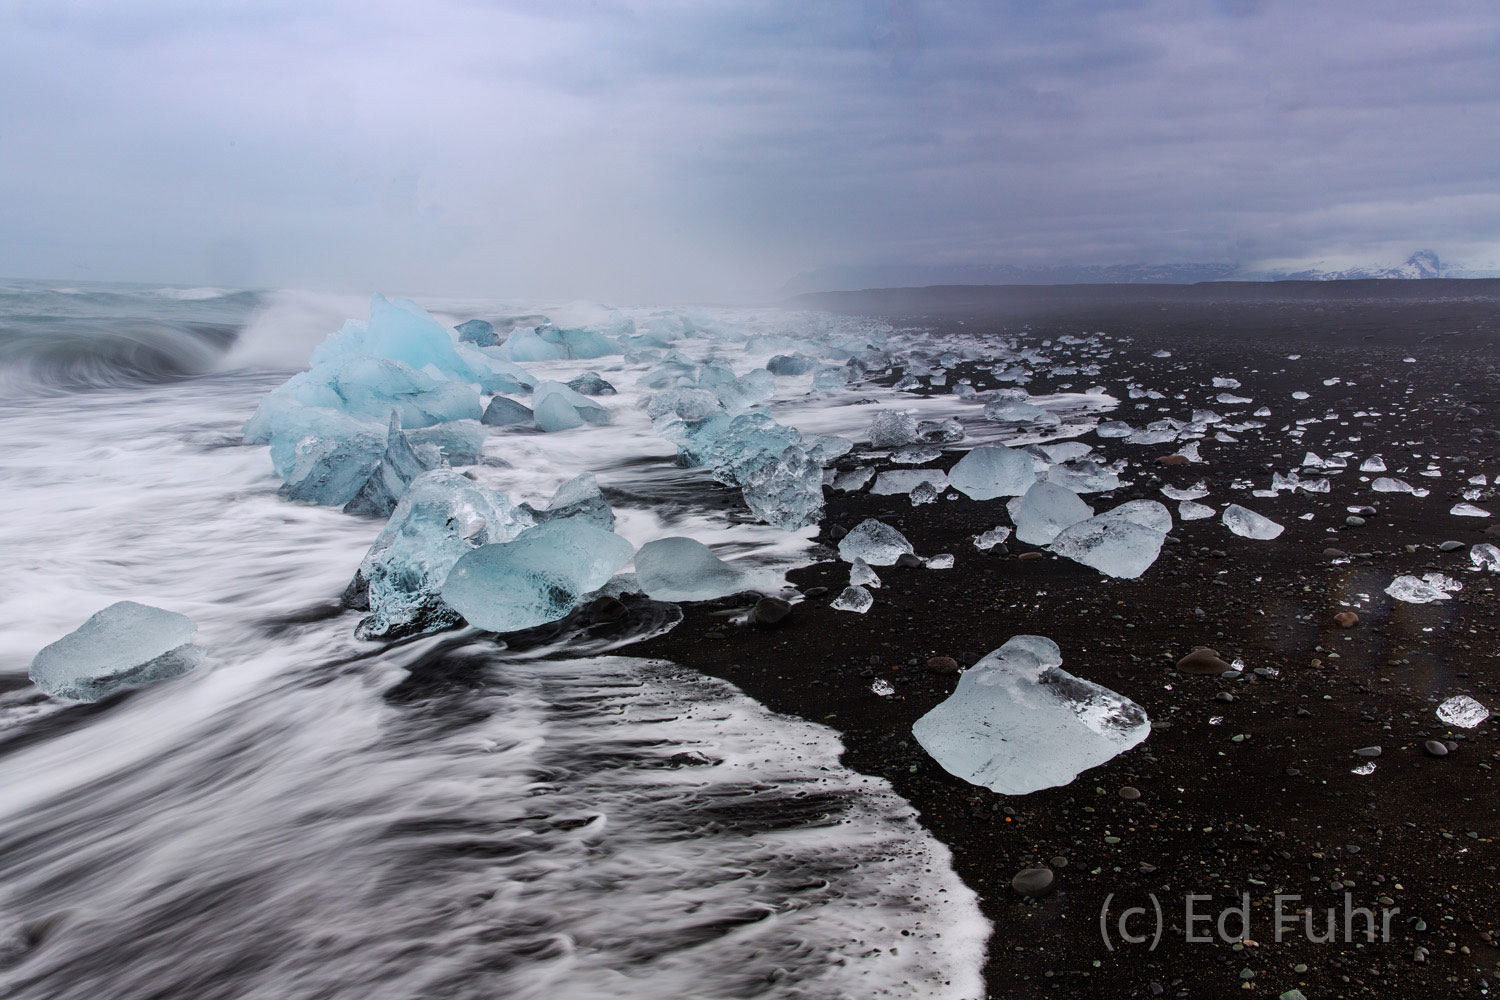 The never ending fury of the ocean hurls the ice from its midst and to the black sand beaches for a final passing.